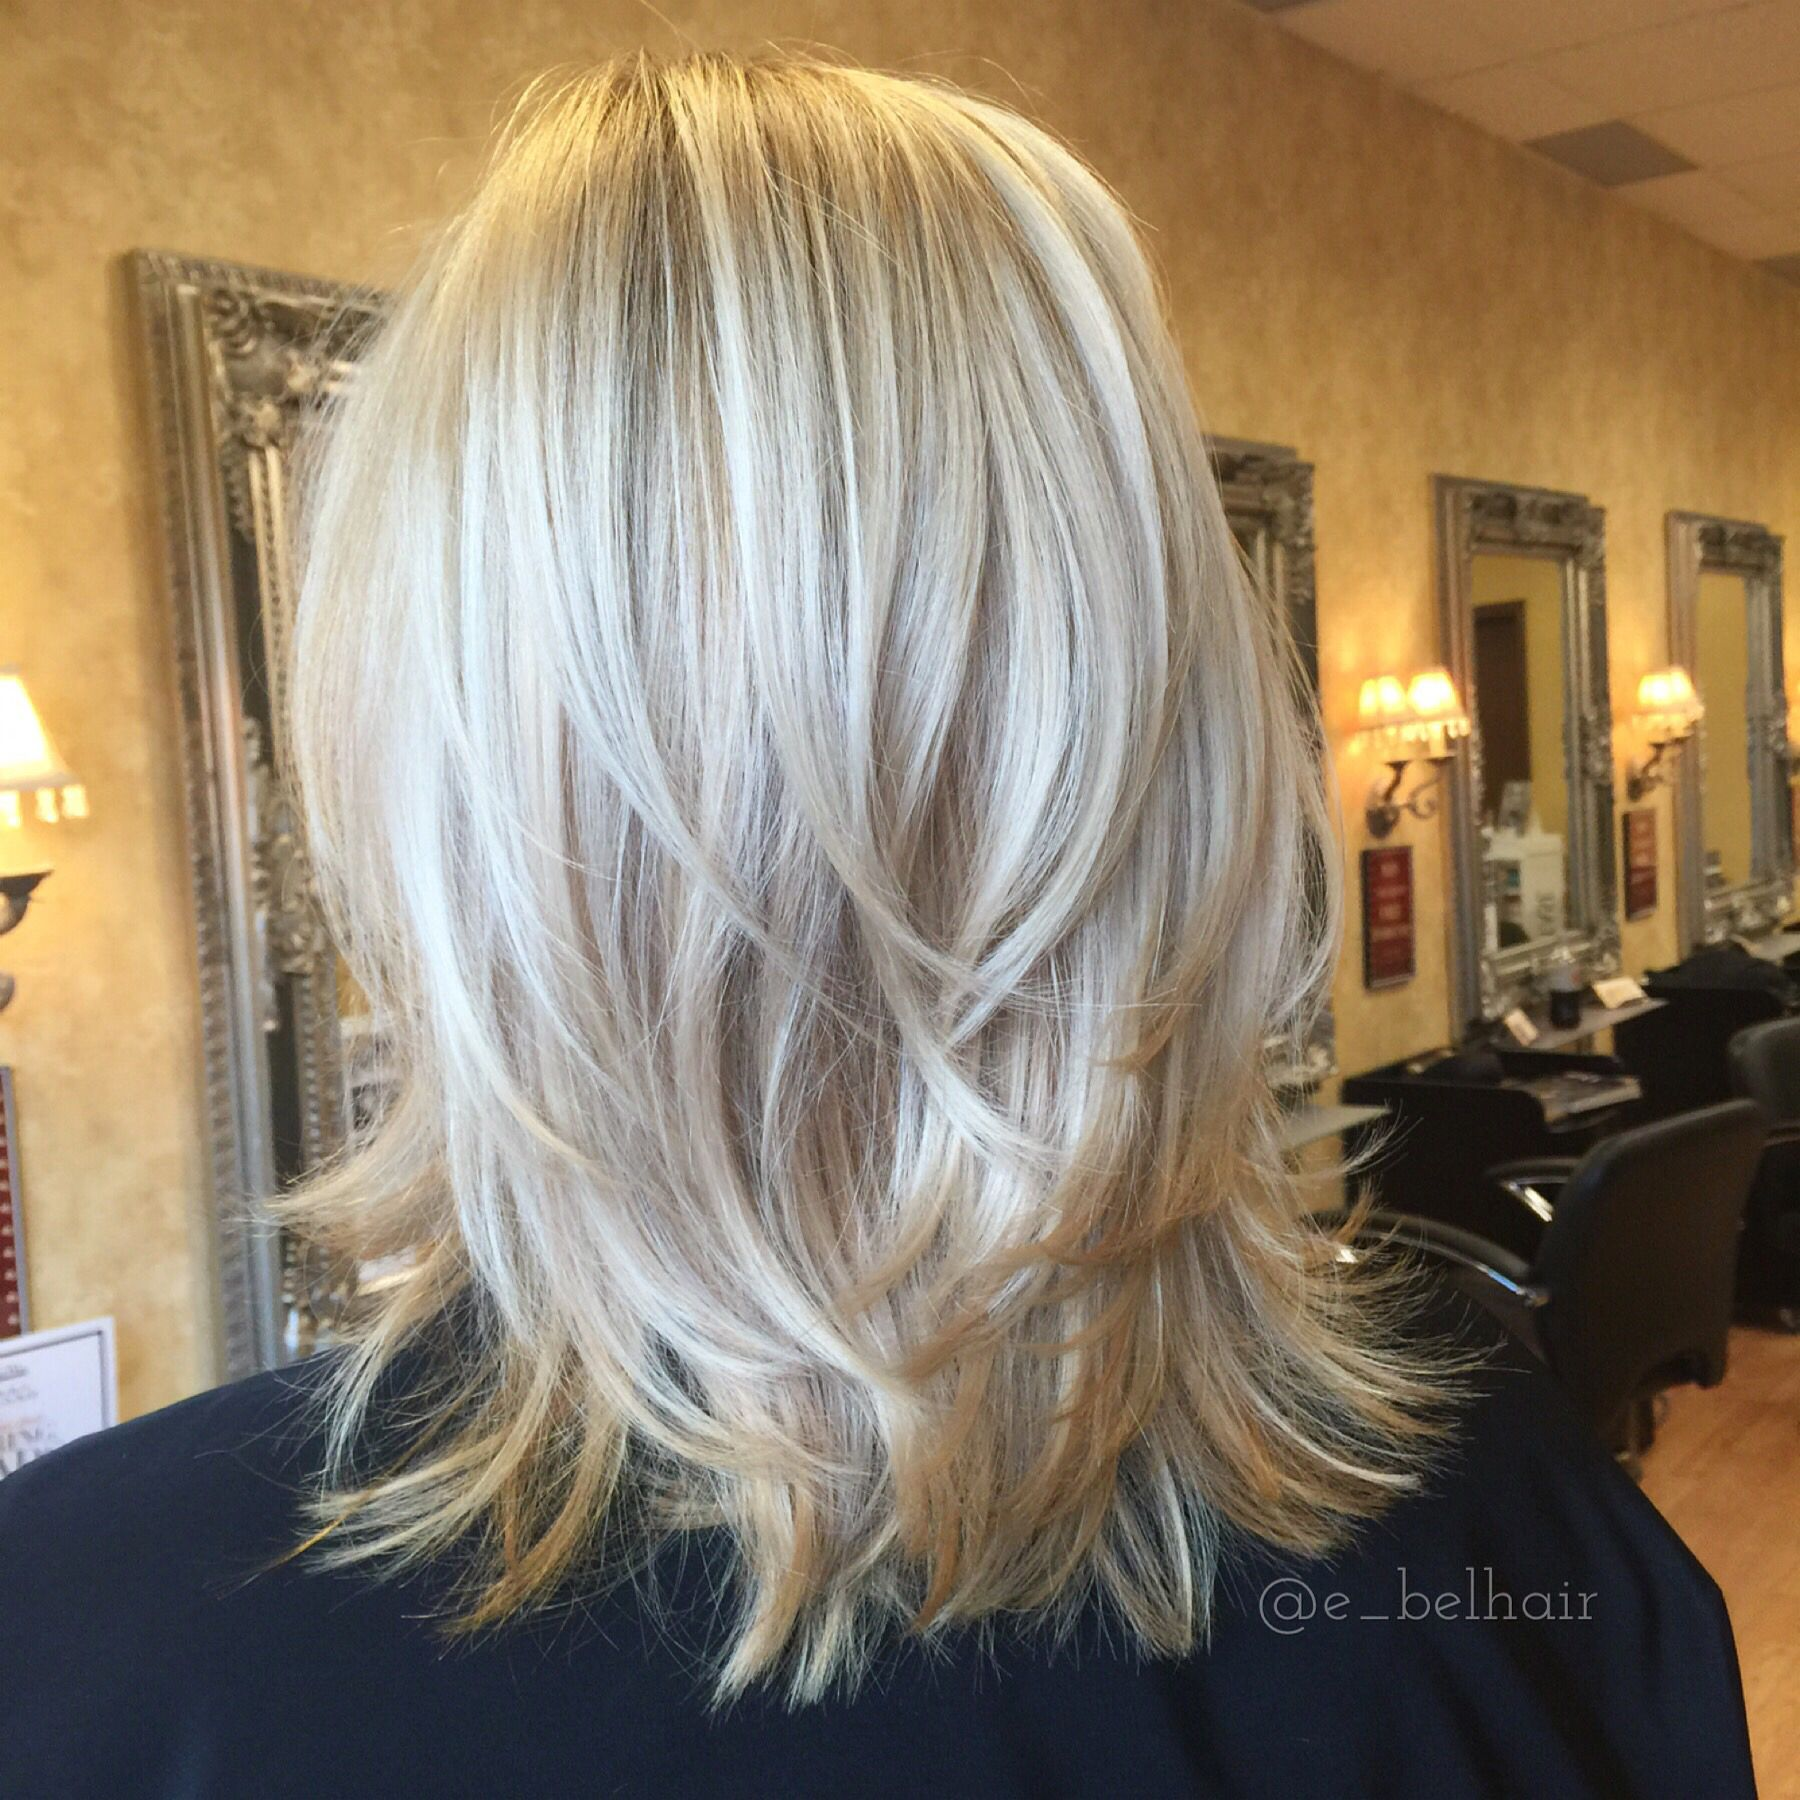 Marvelous Shoulder Length Cut With Tousled Layers And Fresh Blonde Color